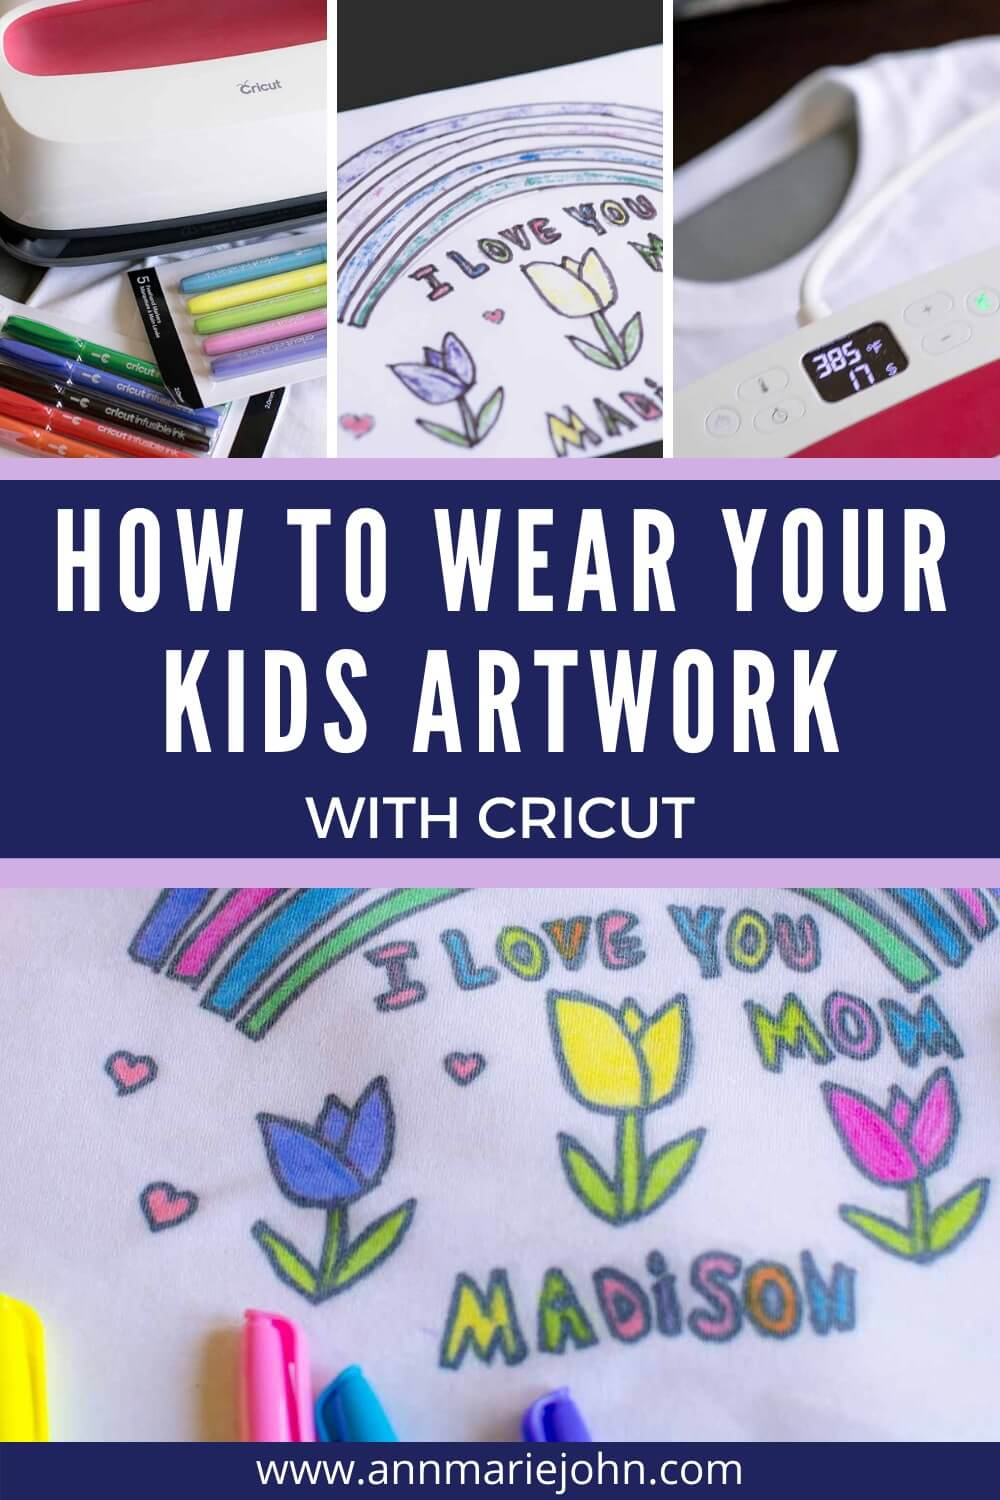 How to Wear Kids Artwork with Cricut